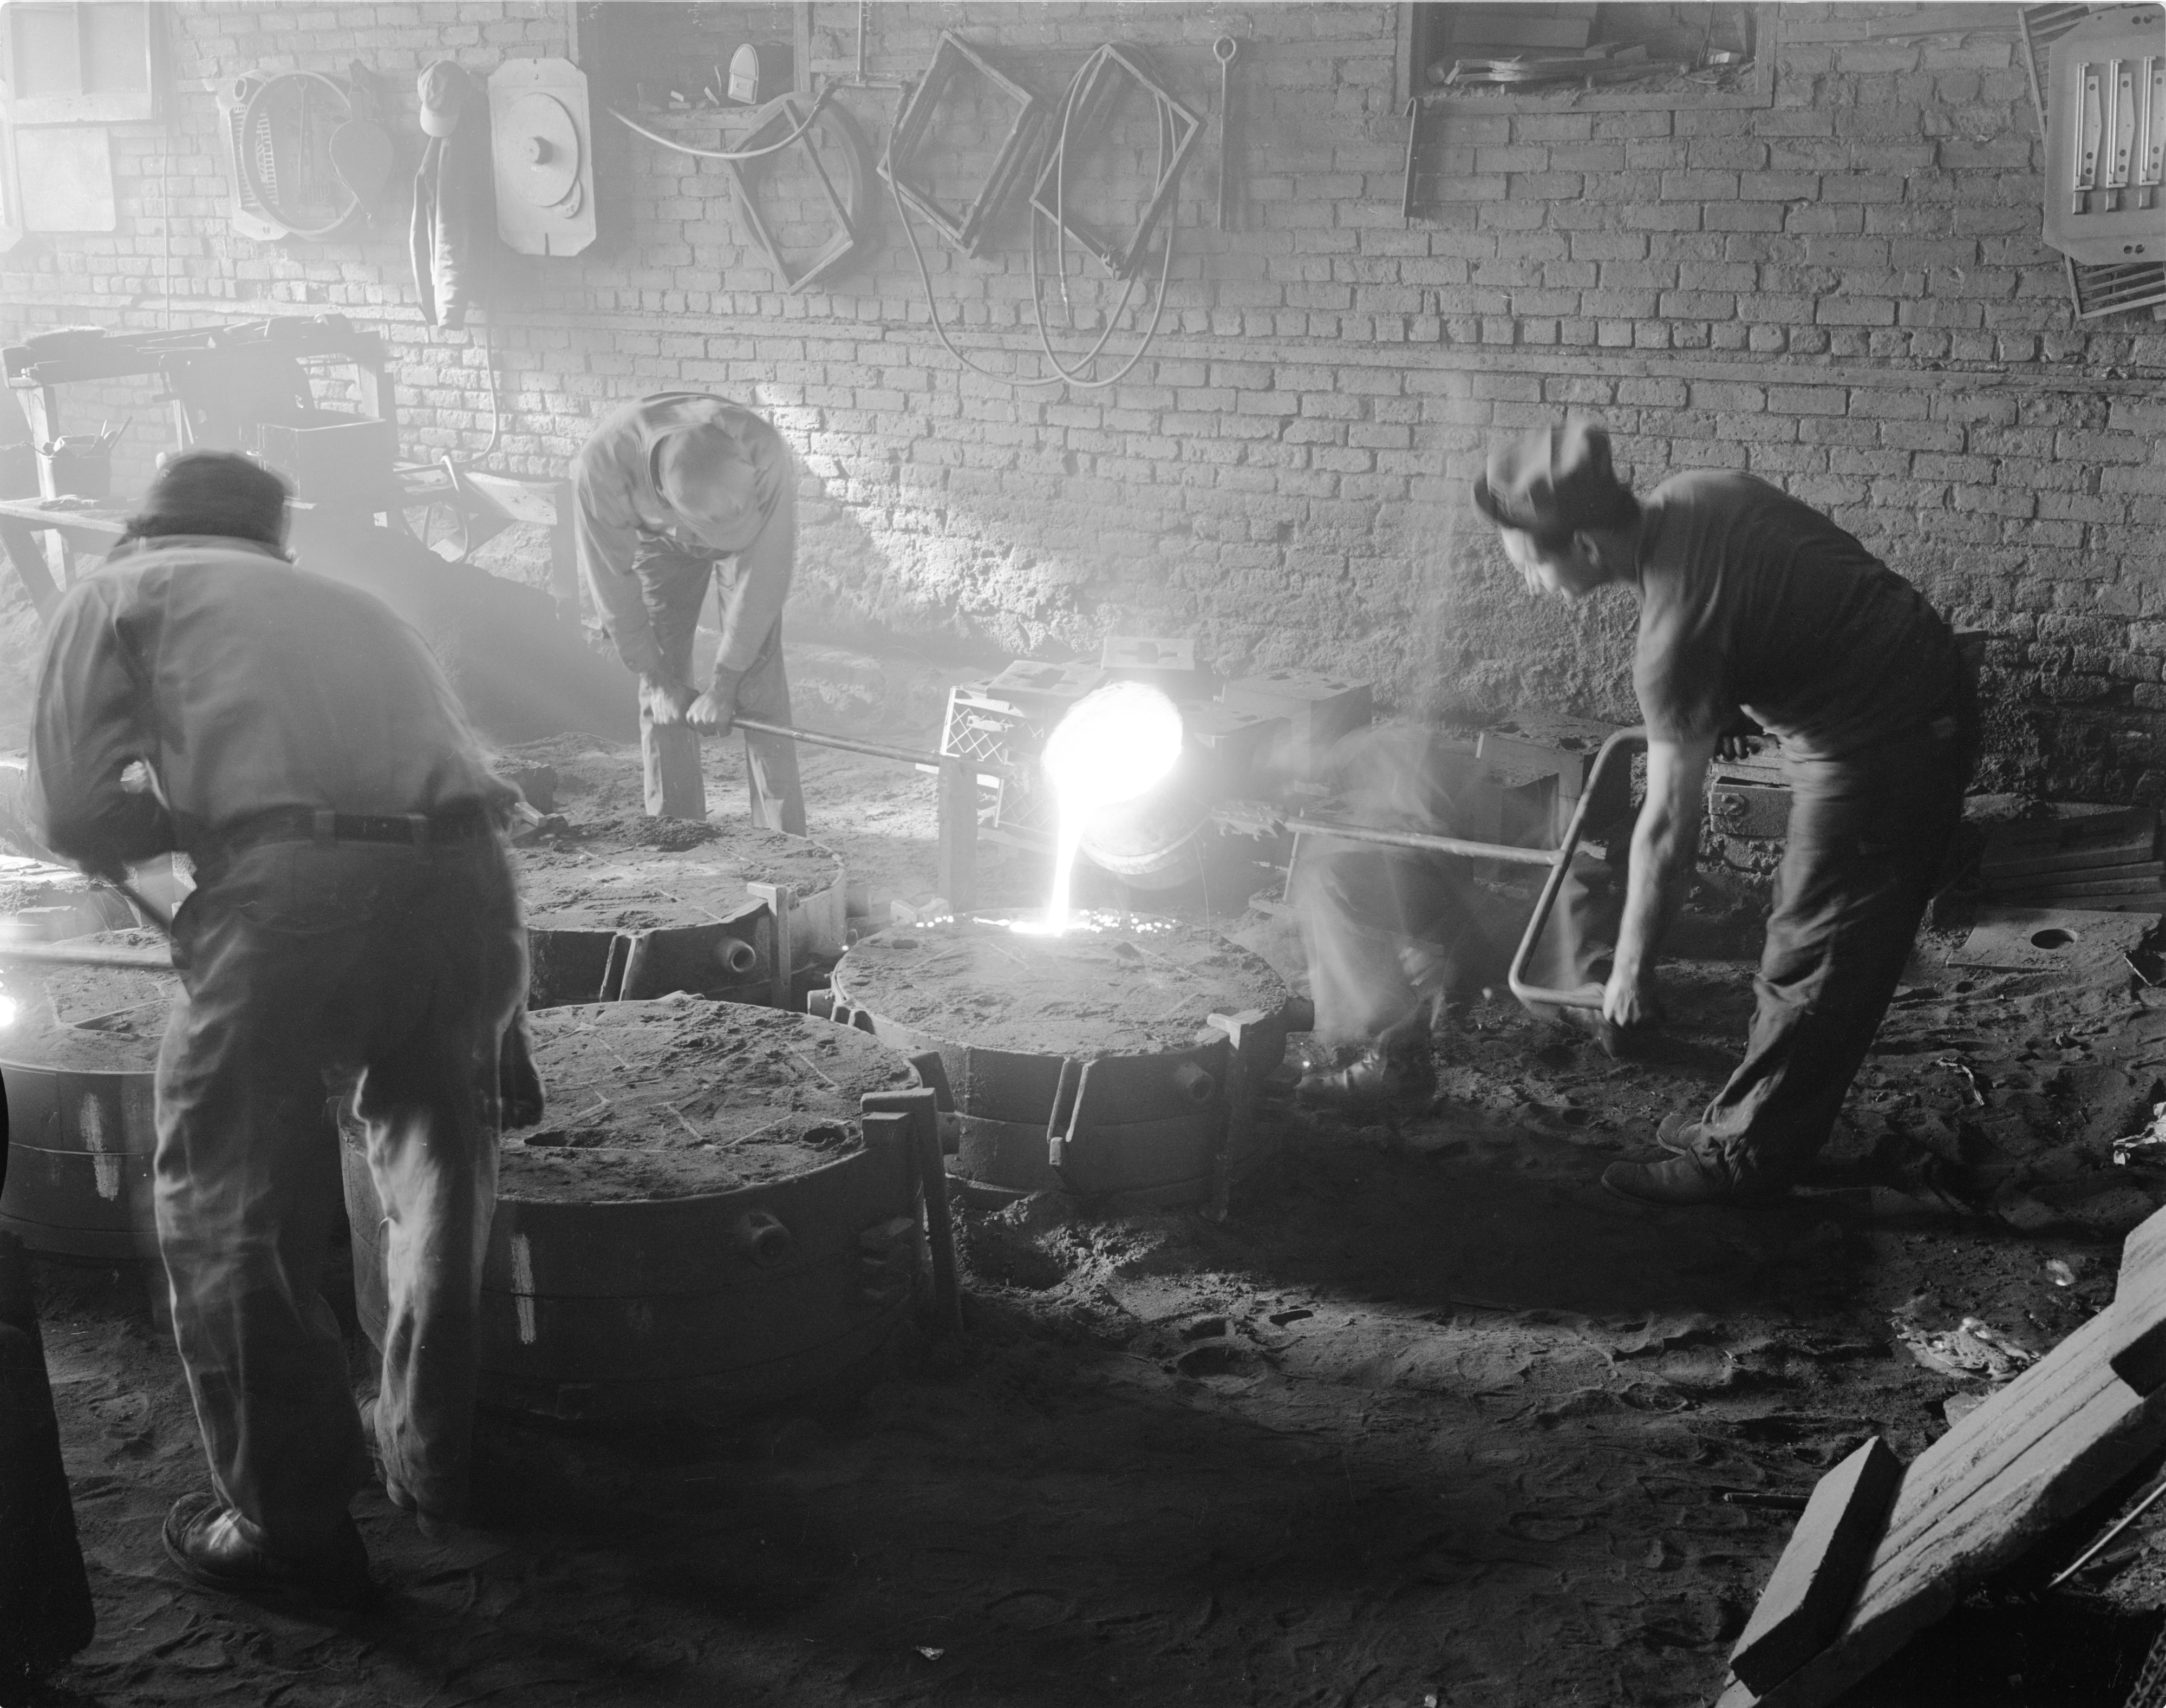 Workers Pour Molten Iron Into A Form At The Ann Arbor Foundry, February 1954 image